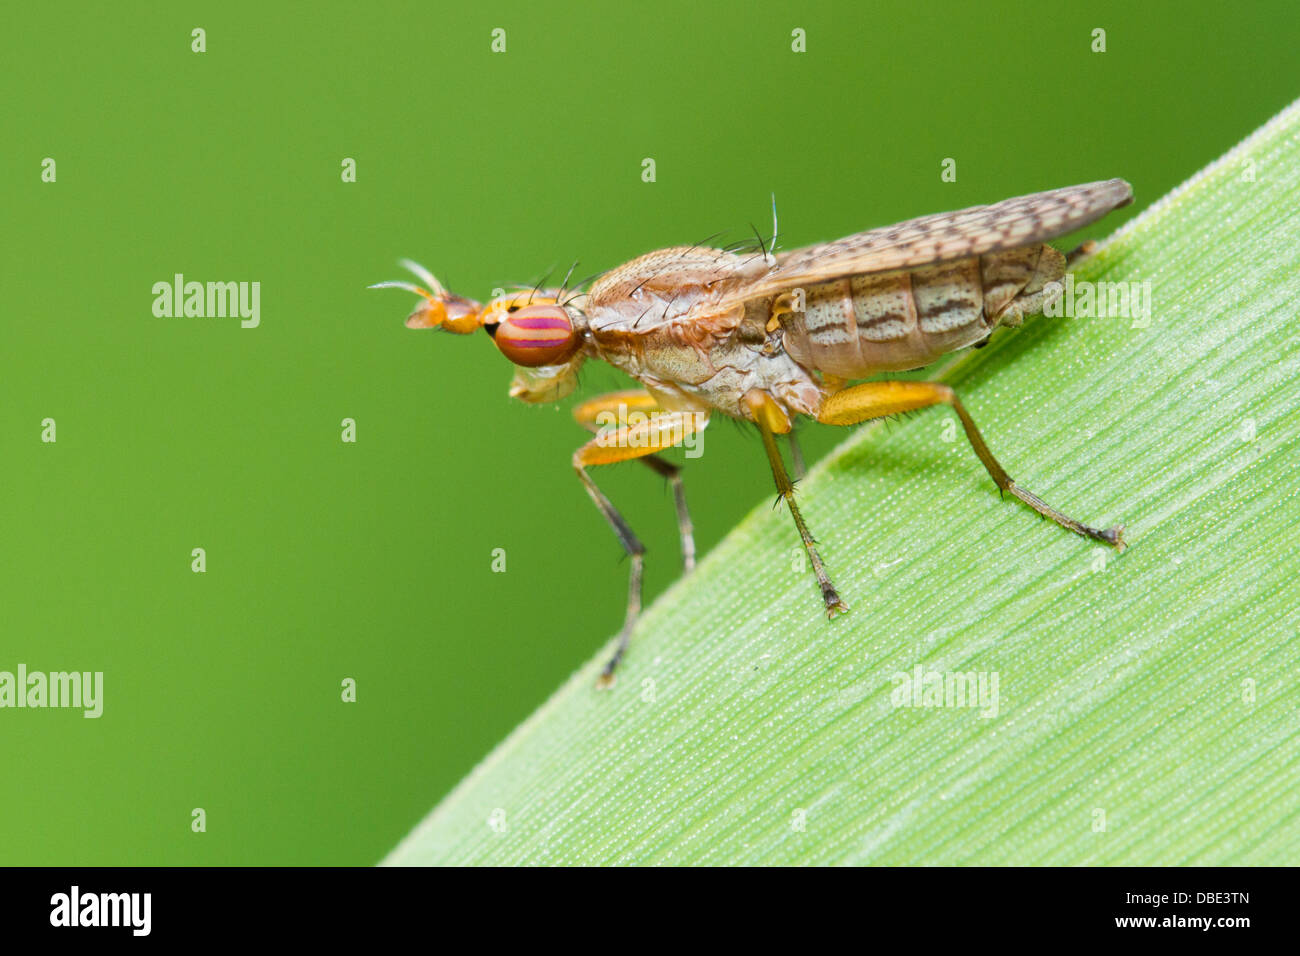 Deer fly perched on a green leaf. Stock Photo